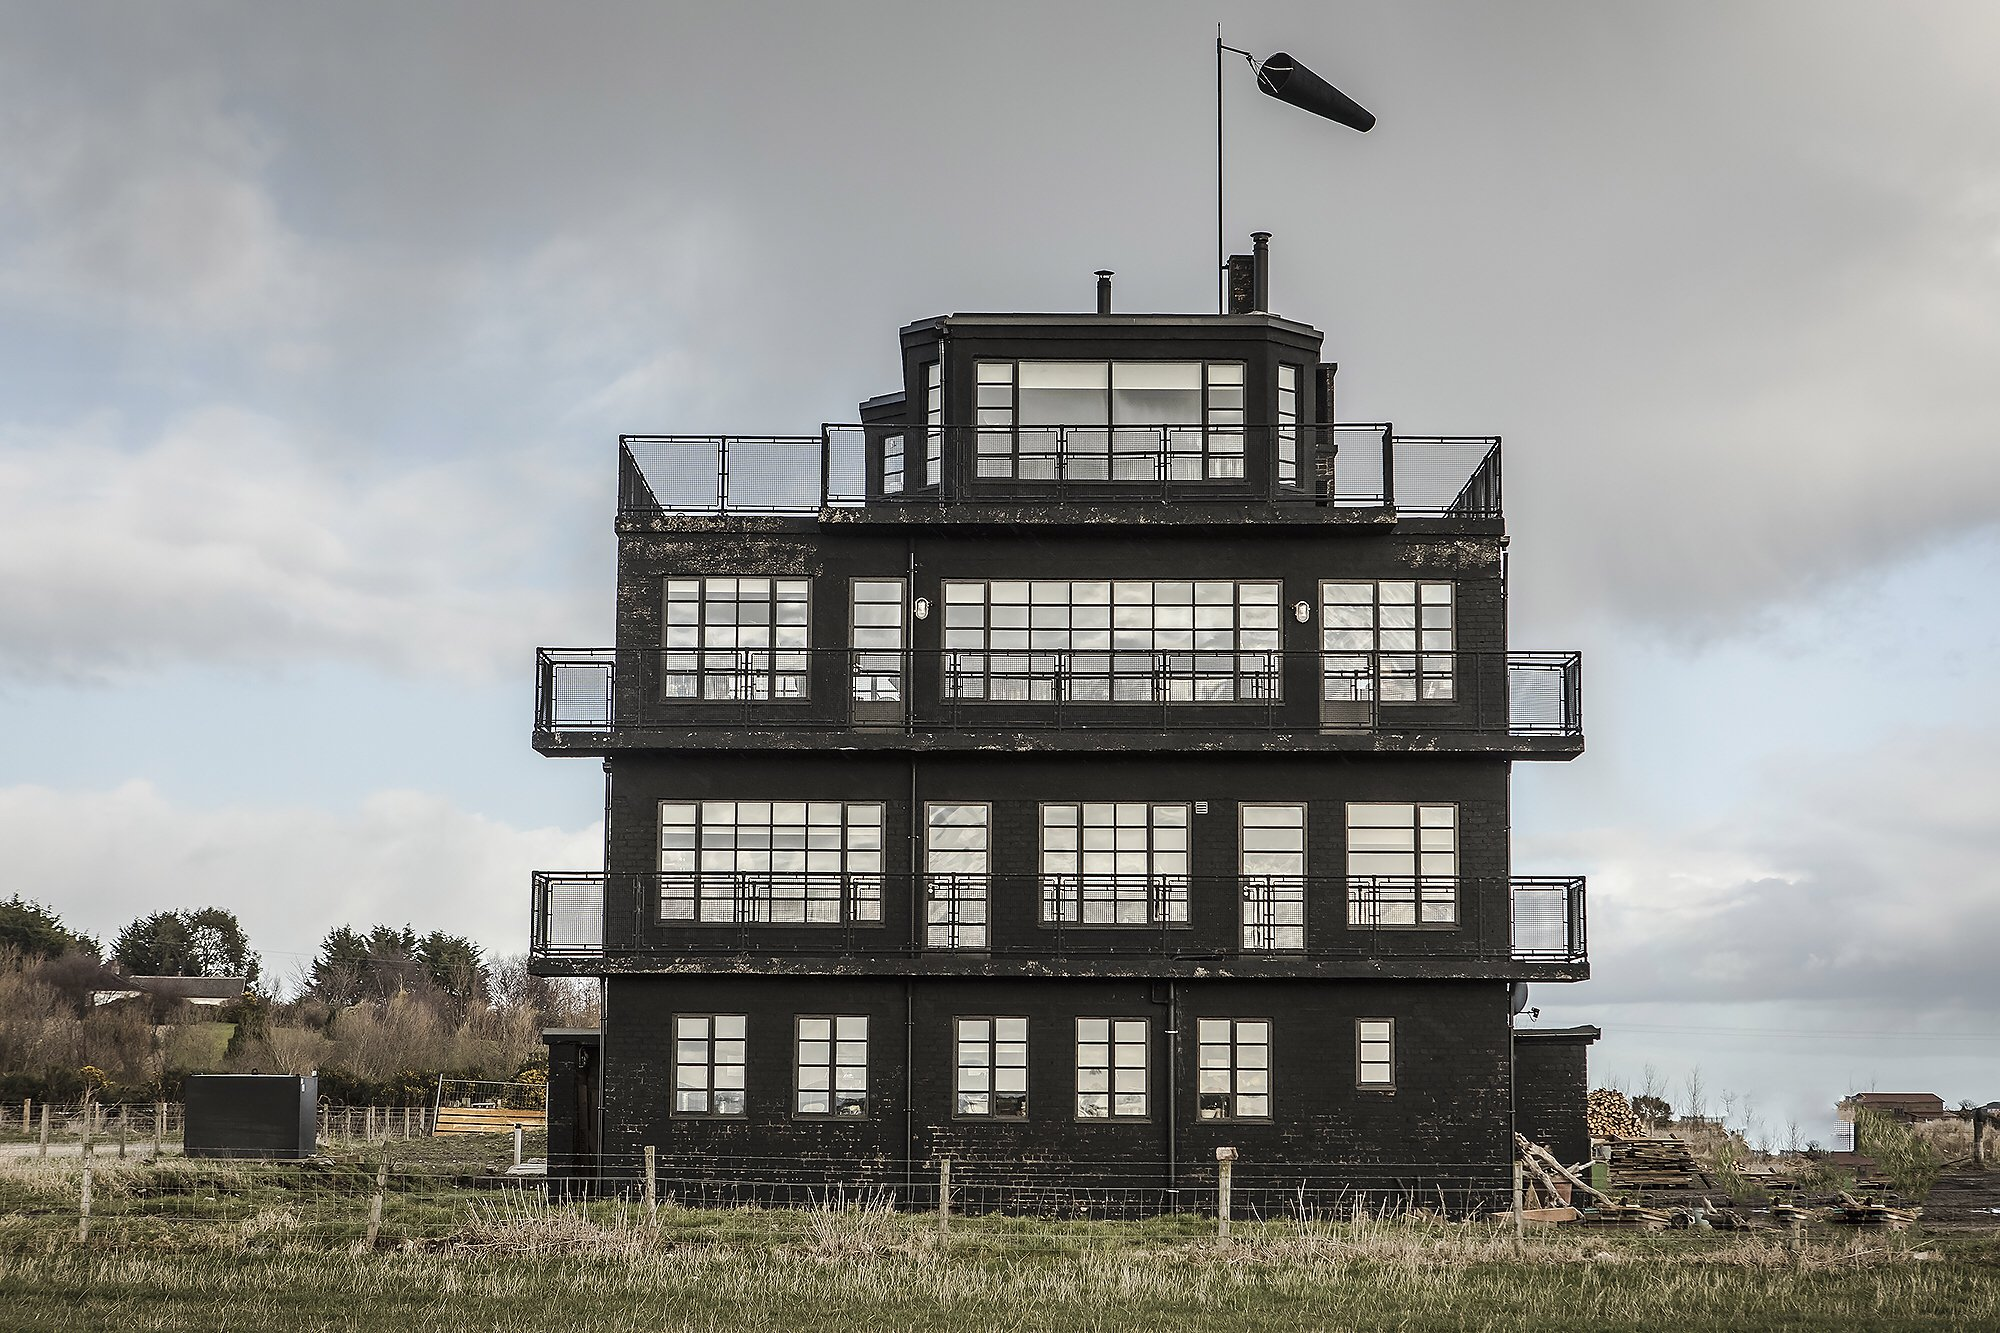 """Calling all history buffs; you can now stay overnight in a former air control tower that served as a unique outpost during WWII. Sitting on a former air base in Tain, next to the North Coast 500 Scenic Route, The HMS Owl Air Control Tower sits against the contrasting Scottish Highlands as is available to stay in via Airbnb. The former military structure, which is located on the original WWII airway, has emerged from a five-year renovation by owners Justin Hooper and Charlotte Seddon to convert it into a family home and guesthouse, successfully shaping it into a cozy living space that maintains its uniquely upcycled war-era glamour. Host Charlotte explained, """"The control tower had been left derelict for decades and we took on its restoration, and much of the labor, as a passion project and the most important thing for us was to preserve the raw, bruised, but not broken feel of the building."""" Donning a matte-black exterior, the structure retained its original steel-framed Crittall windows throughout the renovation process, with exposed brick walls and a collection of antique and factory-esque fixtures that compliment the historical structure???s barebones. While the project is indeed a family home, there is a room on the top floor where guests can enjoy a dreamlike view of the unspoiled landscape. Interiors hone a rugged industrial feel: concrete pillars, ceilings and floors contrast exposed brickwork. Warmer touches come in the form of leather and wooden furniture and a wood burning stove which takes pride of place in the living room. Charlotte continued, """"We rebuilt the Black Nissen hut adjacent to the tower which is also newly available to rent. We put them both on Airbnb as we wanted to be open to a large audience from the off and see what happened! It's gone well so far and guests seem to really enjoy their stays in both the tower and the Black Nissen."""" Rates for the room on the top floor start from ??75 per night which comes complete with far-reaching v"""